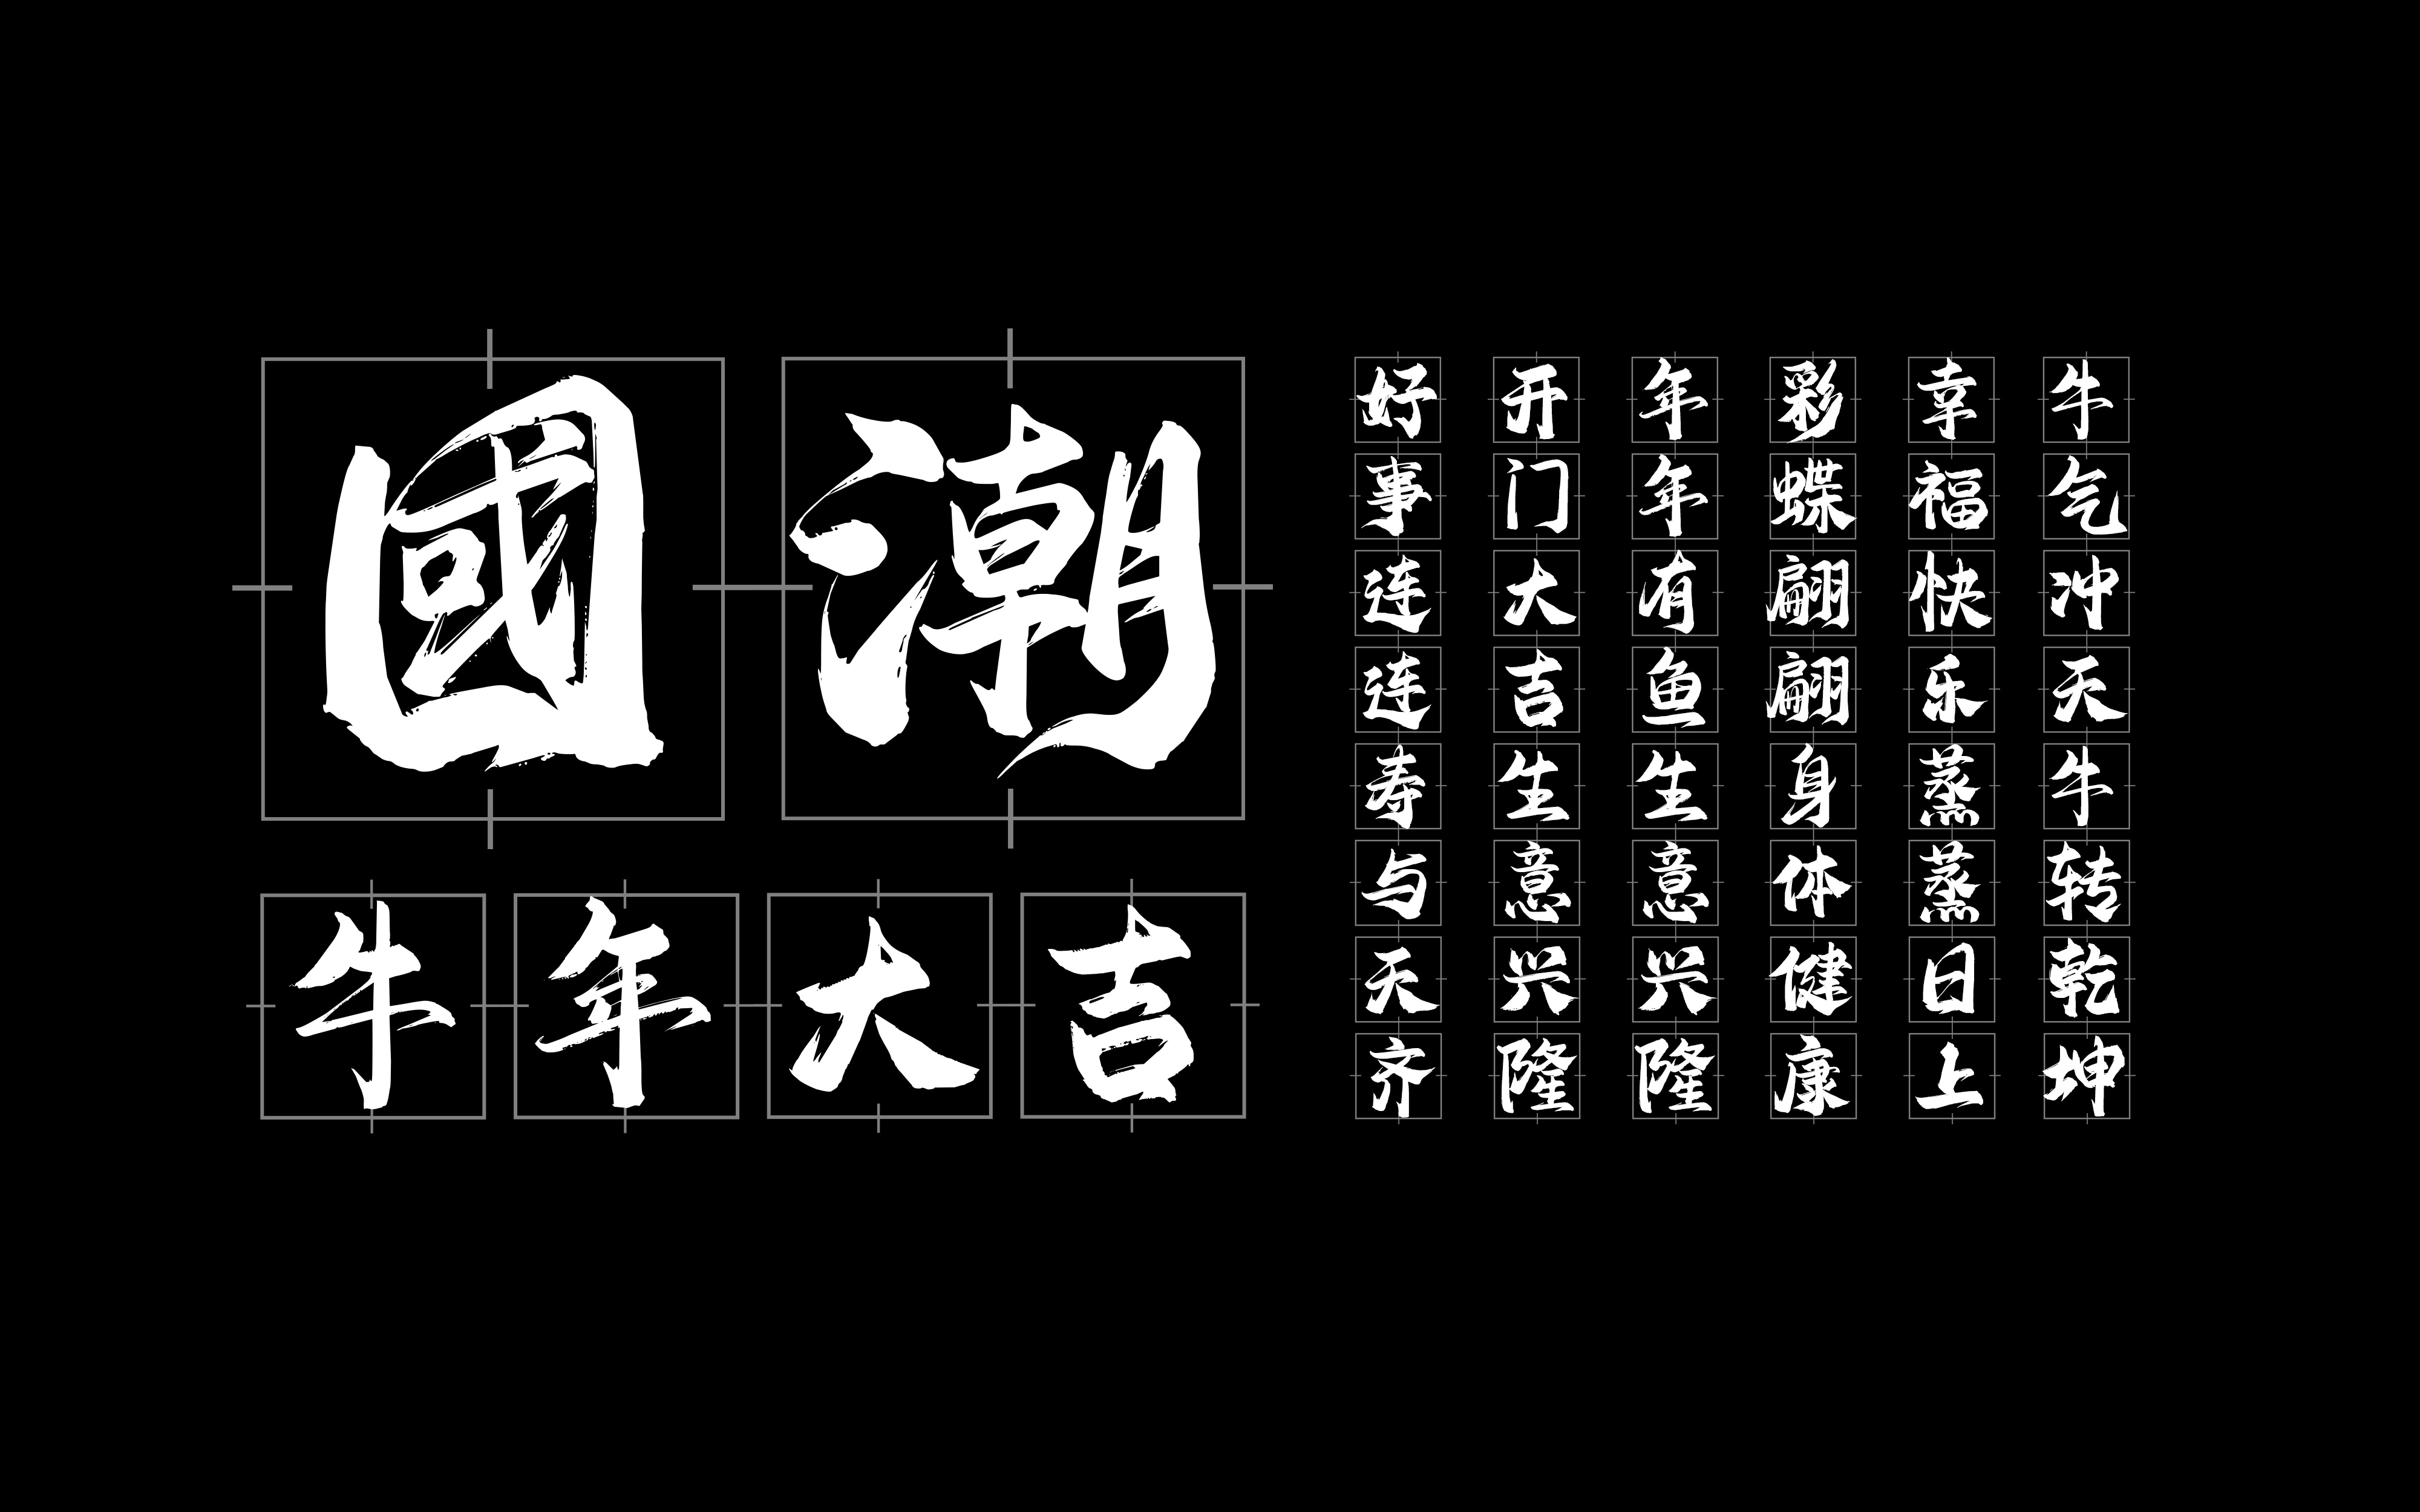 Chinese simple+Chinese traditional+English characters have a total of 10279 characters